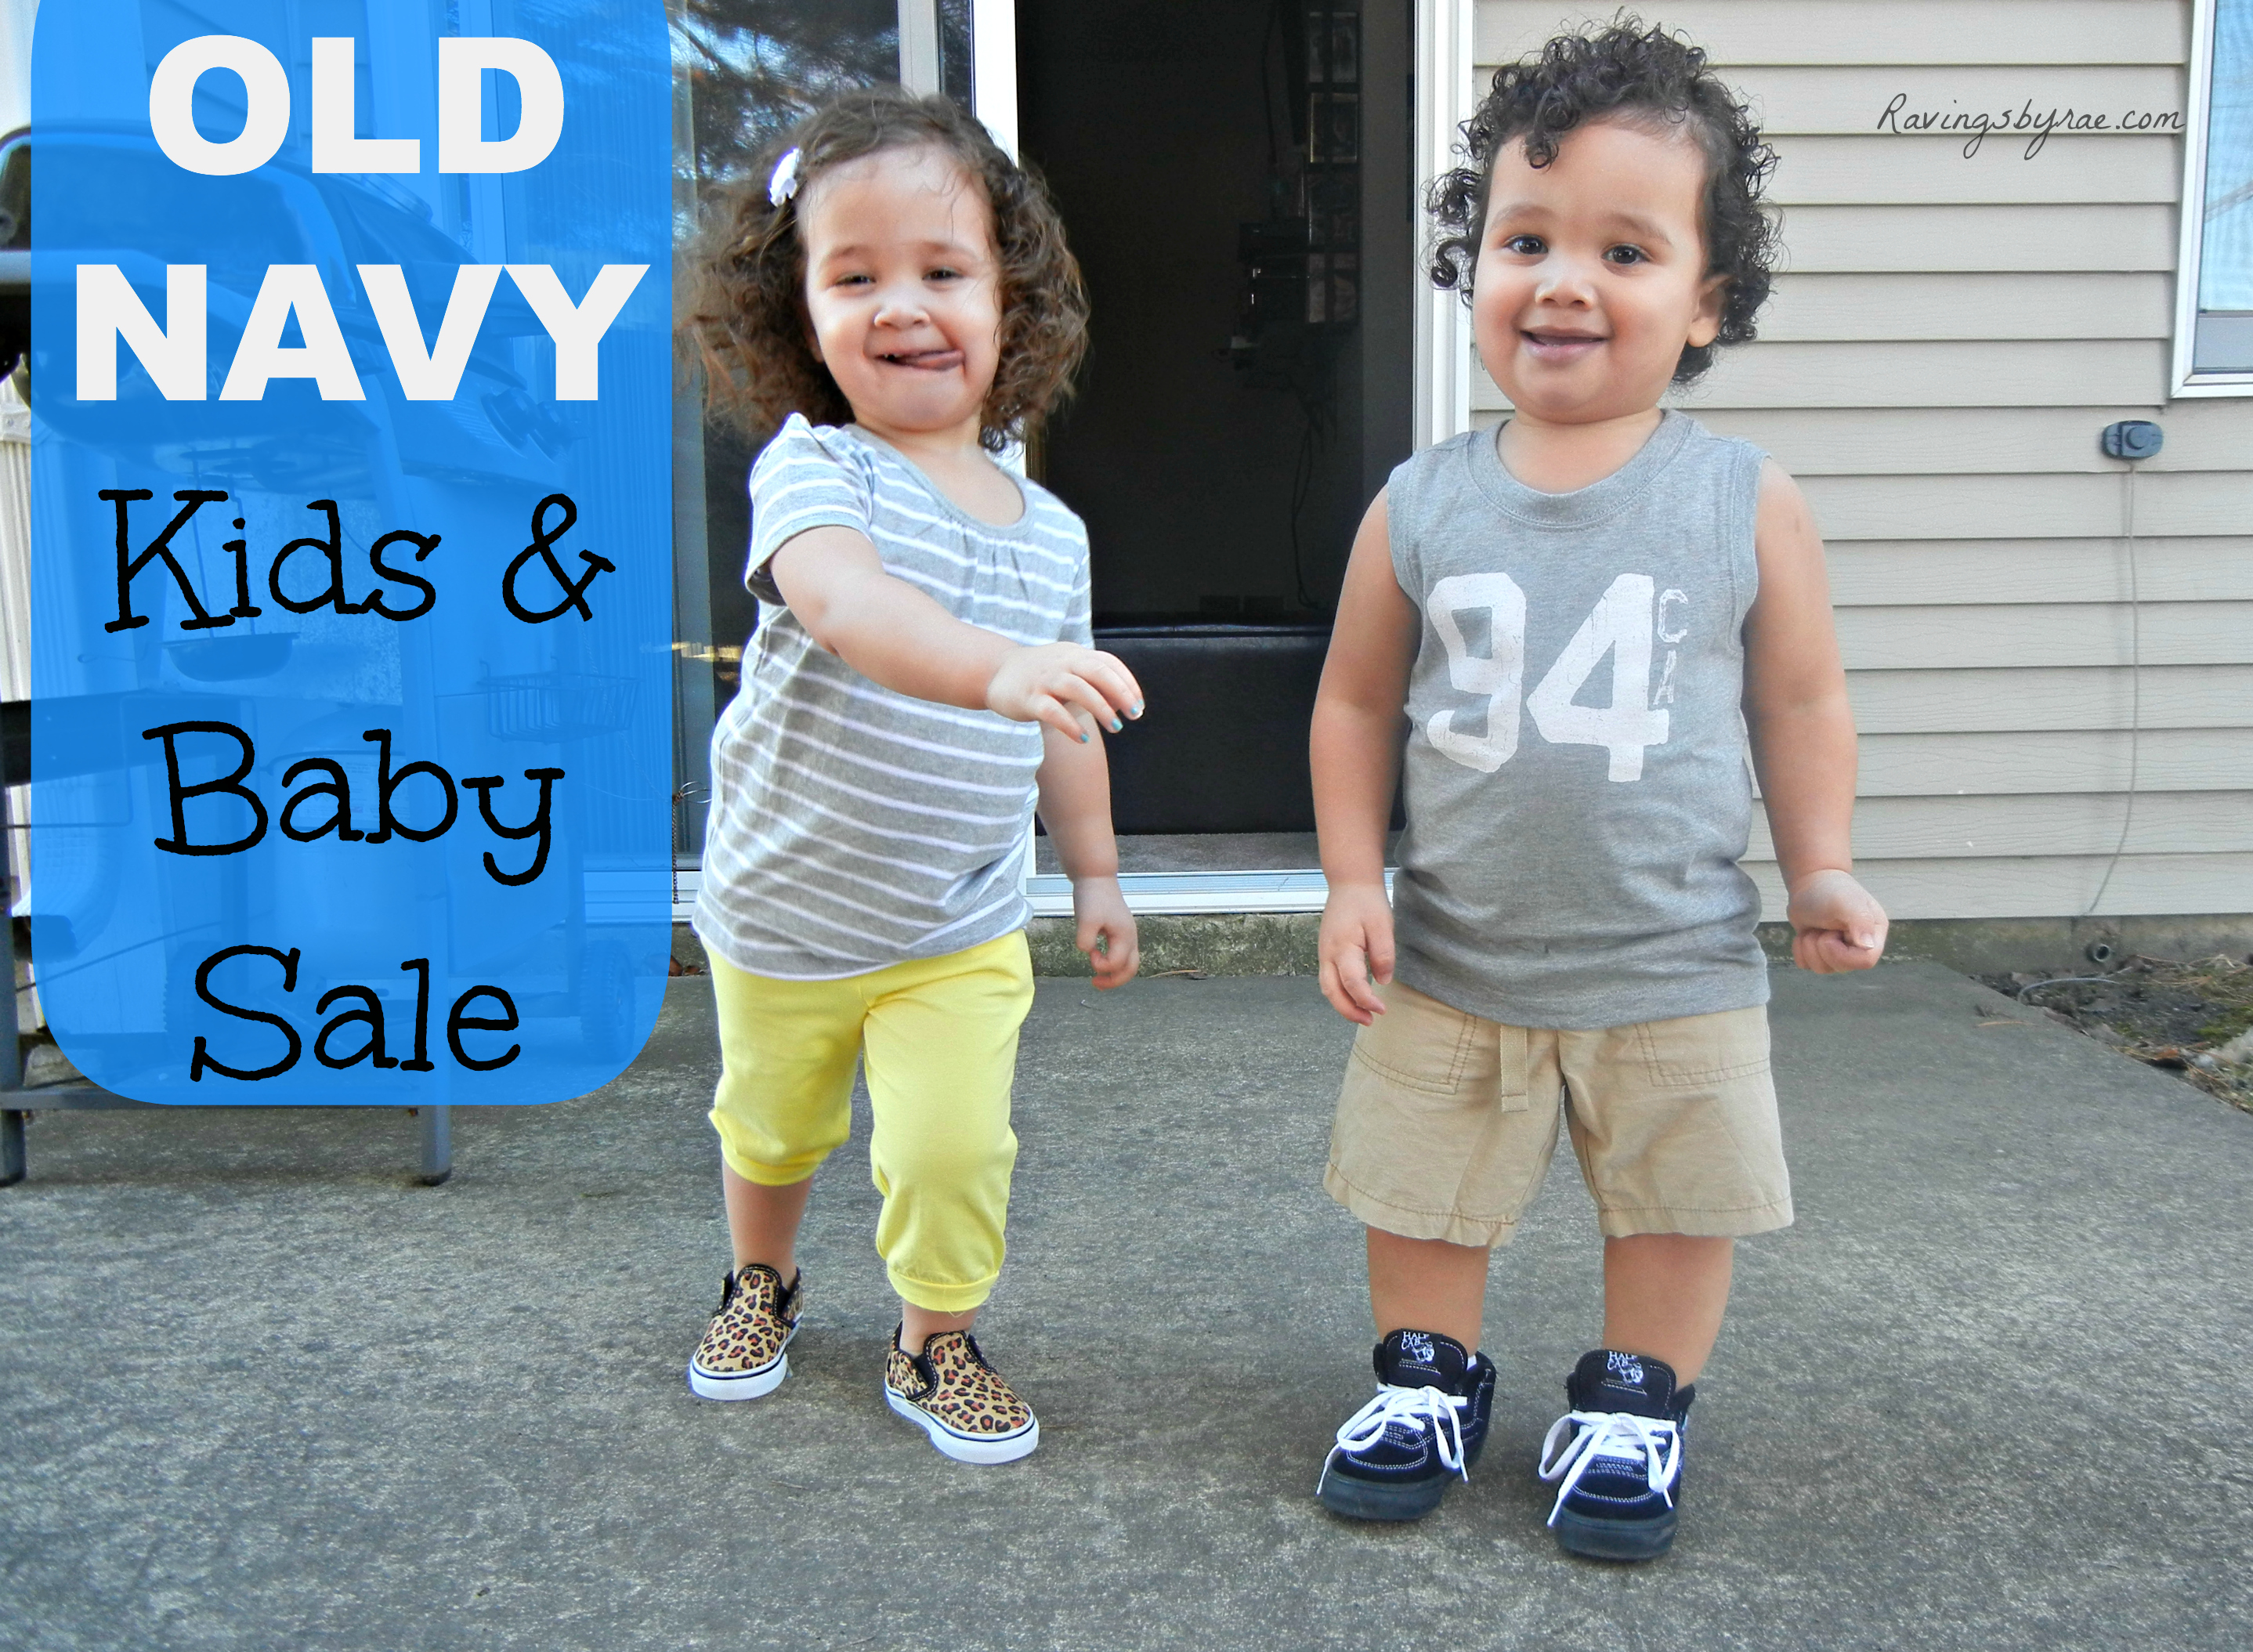 Building My Kids\' Spring Wardrobe With Old Navy - Sarah Rae Vargas